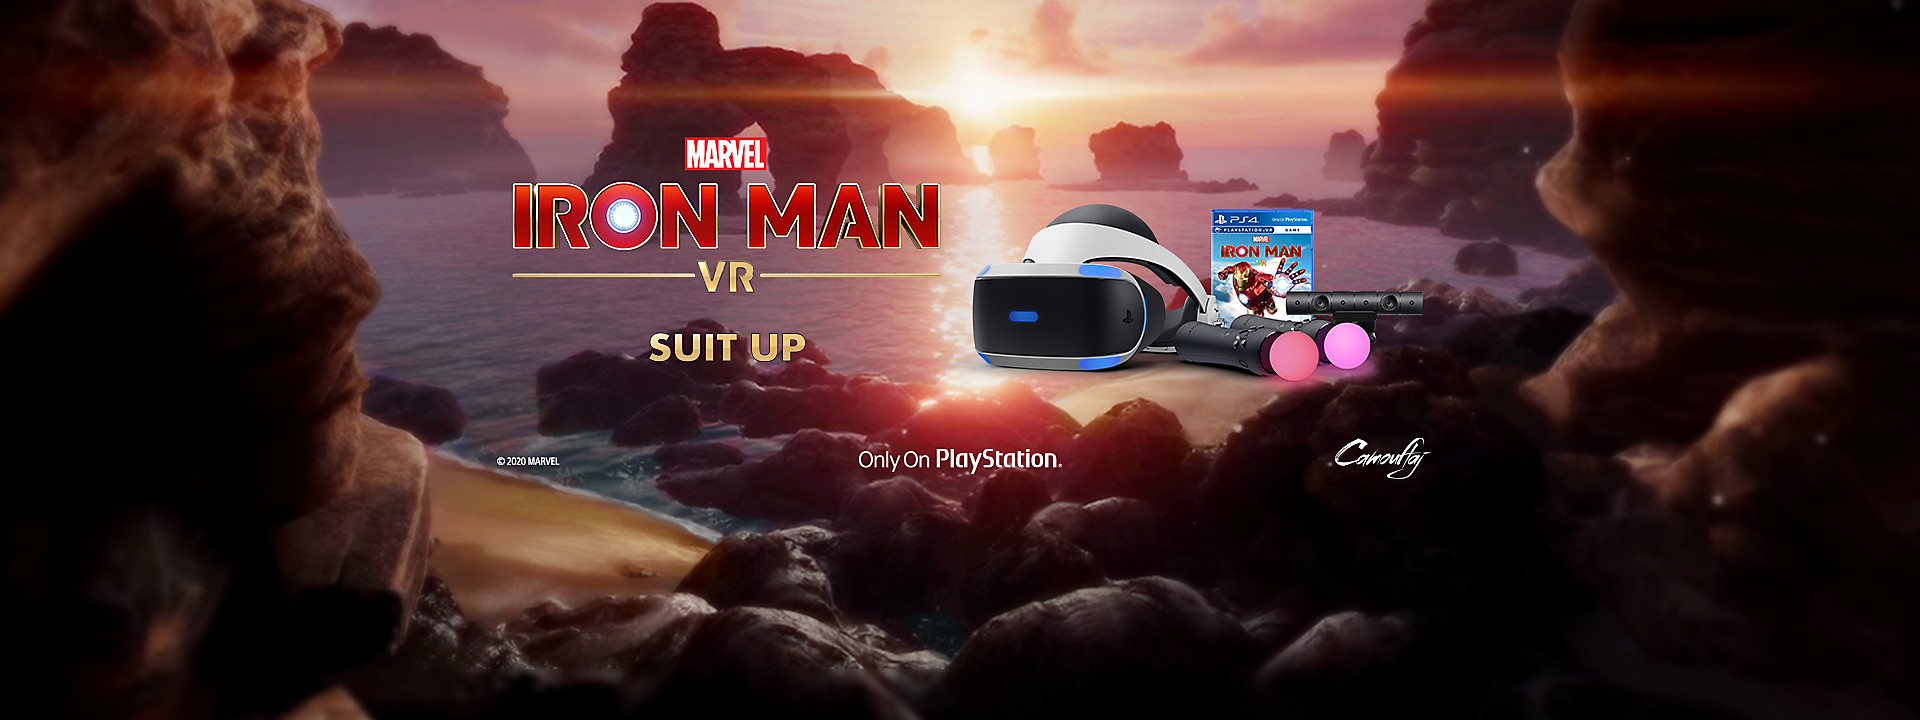 Marvel's Iron Man VR - Now Available